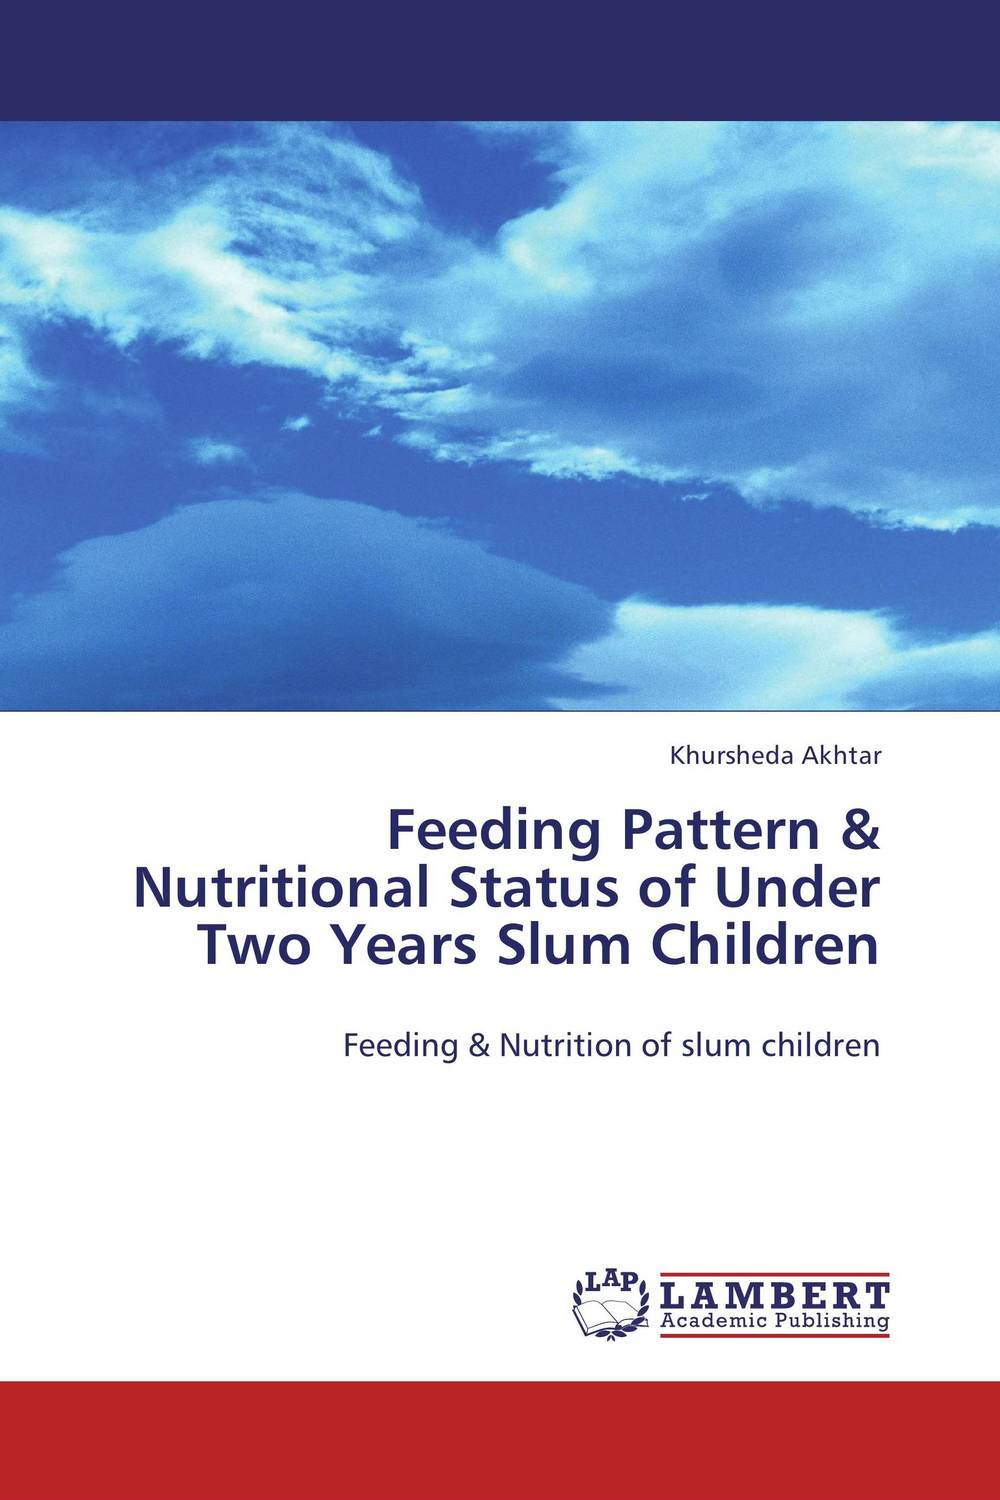 Feeding Pattern & Nutritional Status of Under Two Years Slum Children